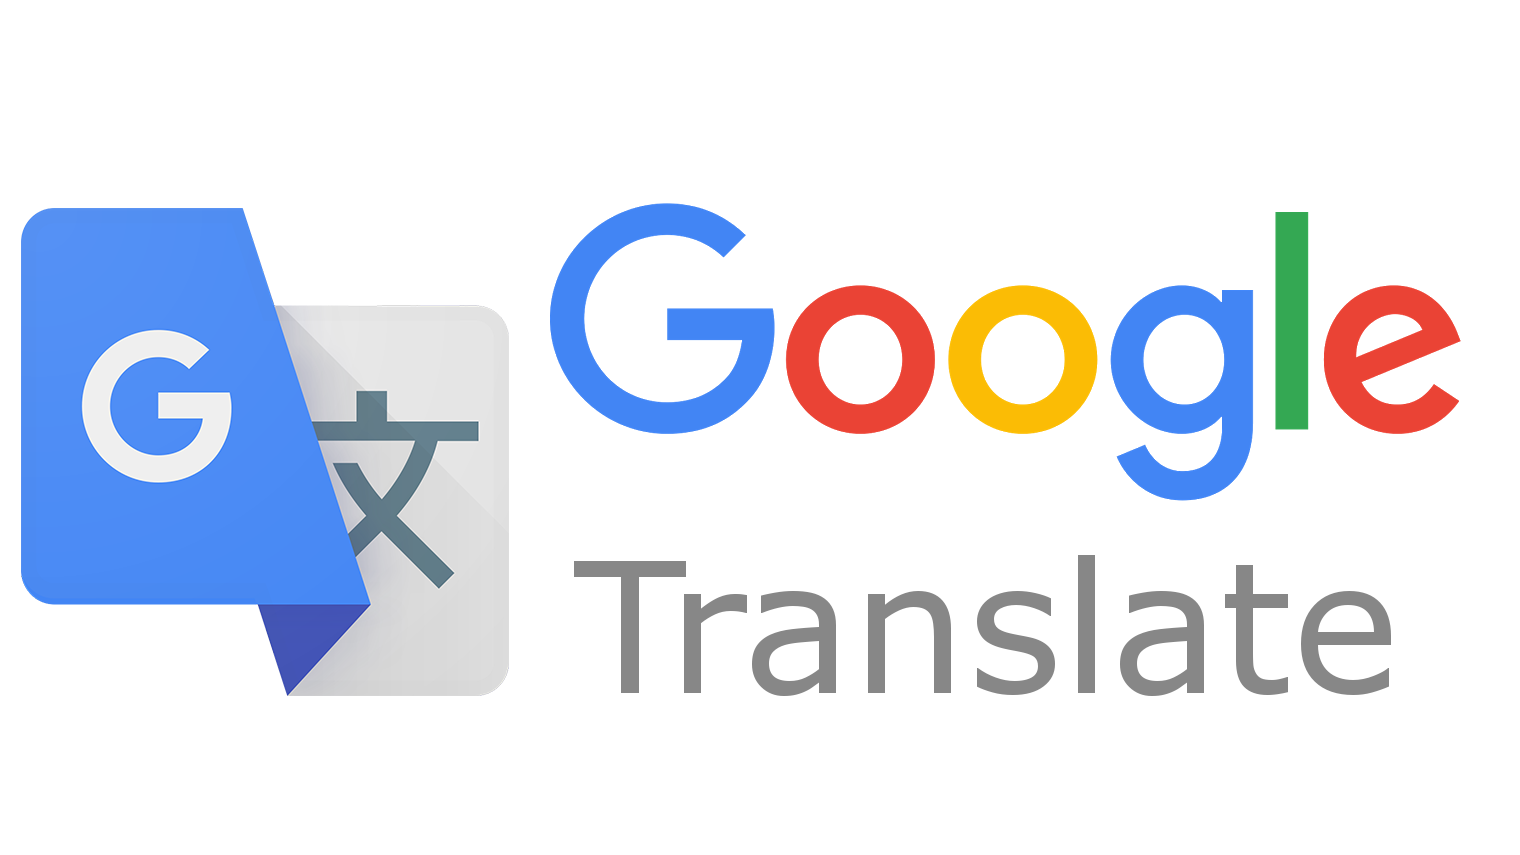 application translate english to french